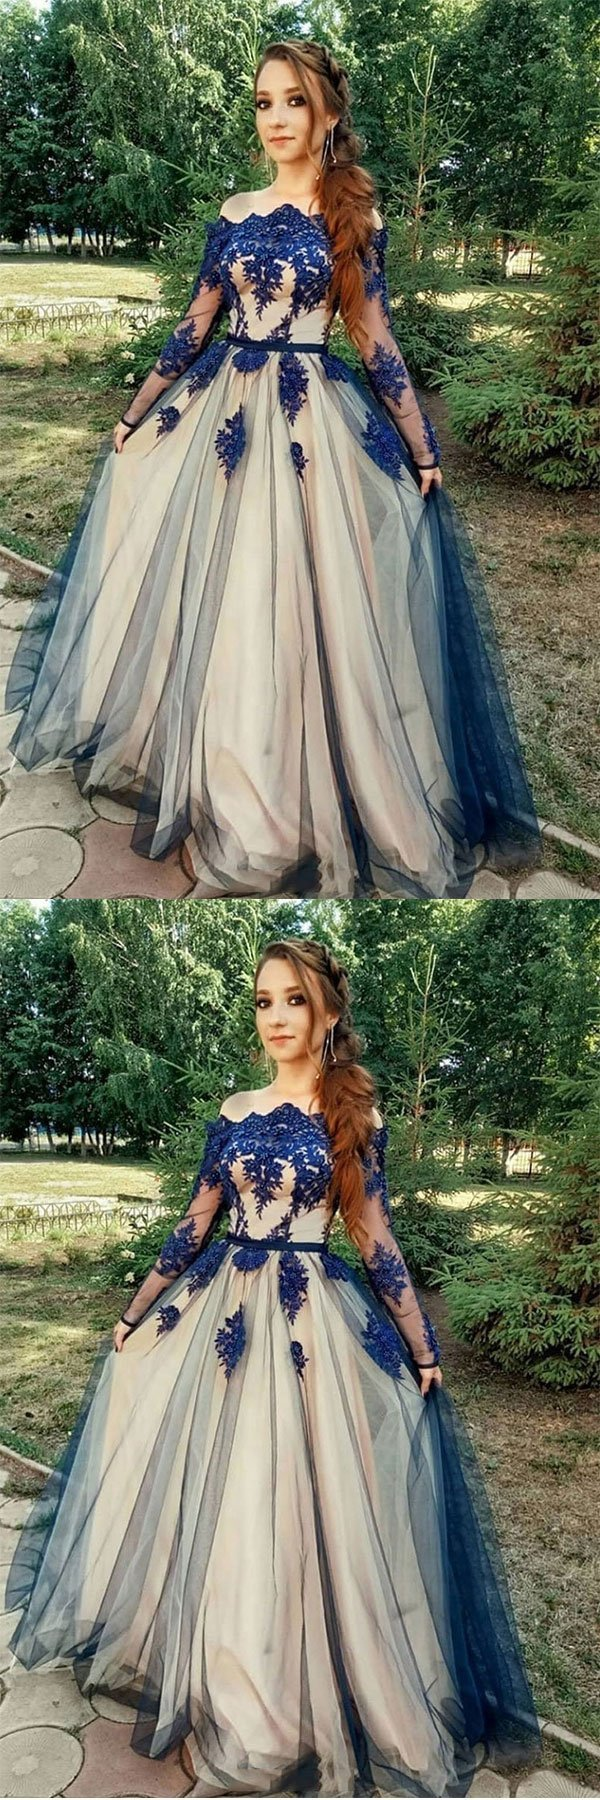 Beautiful Long Sleeves Blue Lace Tulle A Line Long Sleeve Formal Prom Dress,